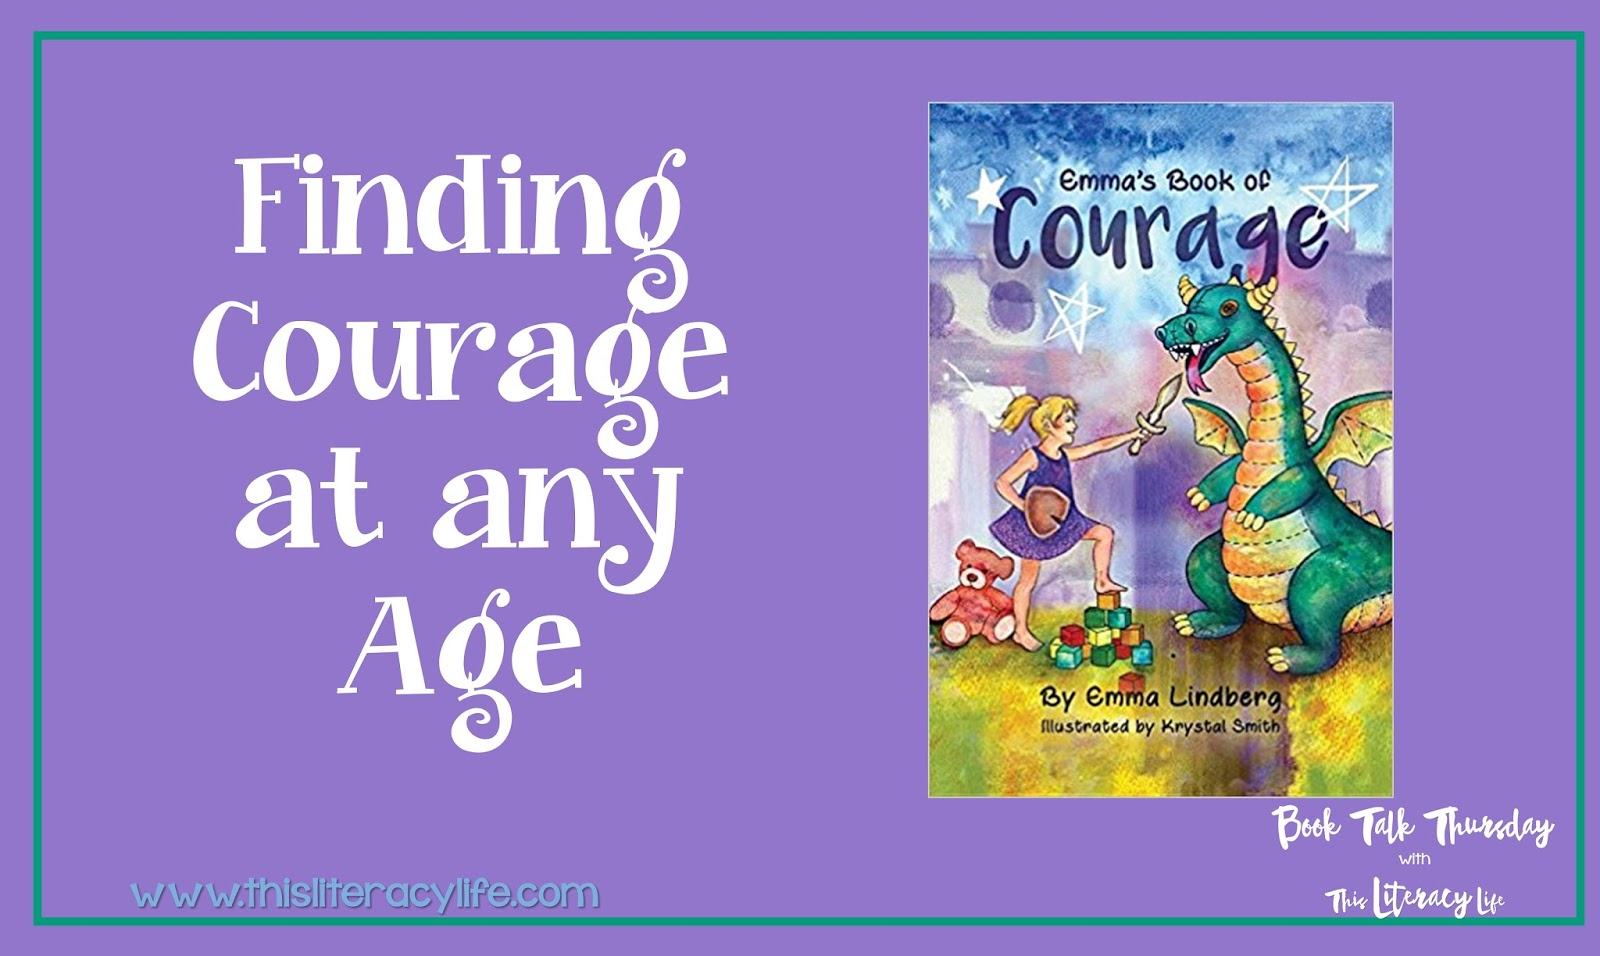 Having courage is more than just doing things when you are scared. Young Emma tells us all about how we need courage in many different situations in her own book.